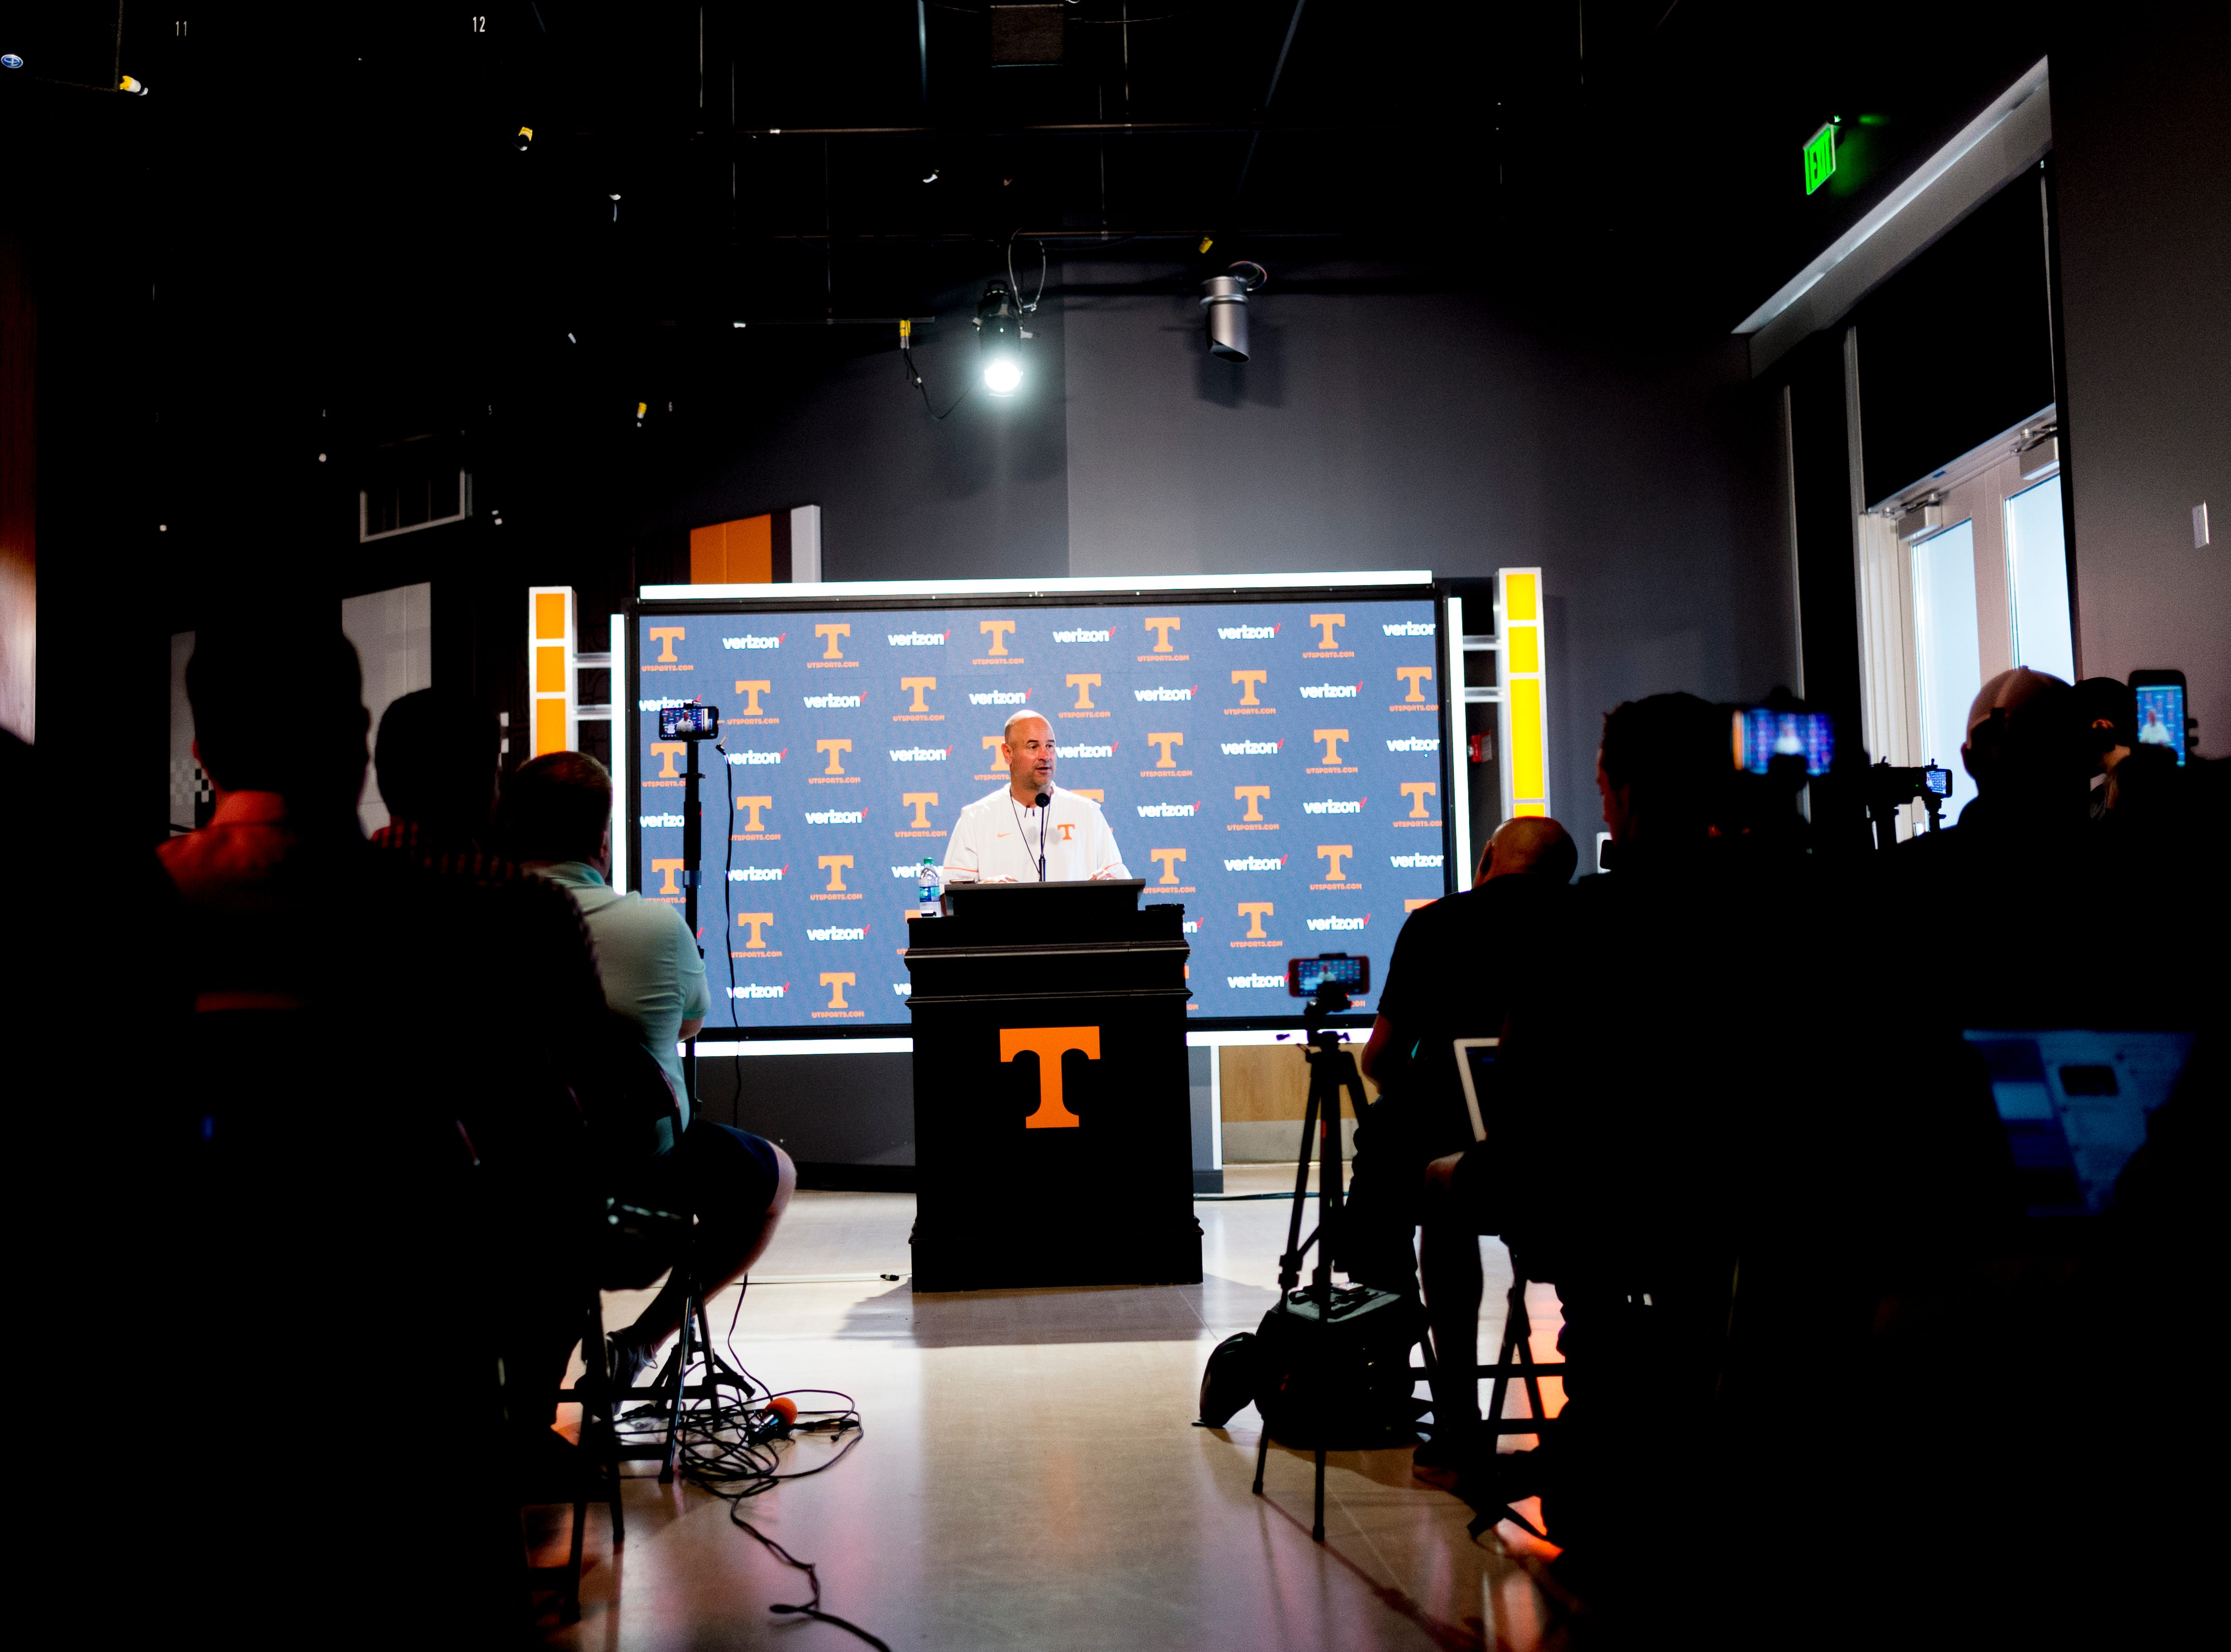 Tennessee Head Coach Jeremy Pruitt speaks during a press conference at the Roy & Lucy Hand Digital Studio in Knoxville, Tennessee on Thursday, August 9, 2018.